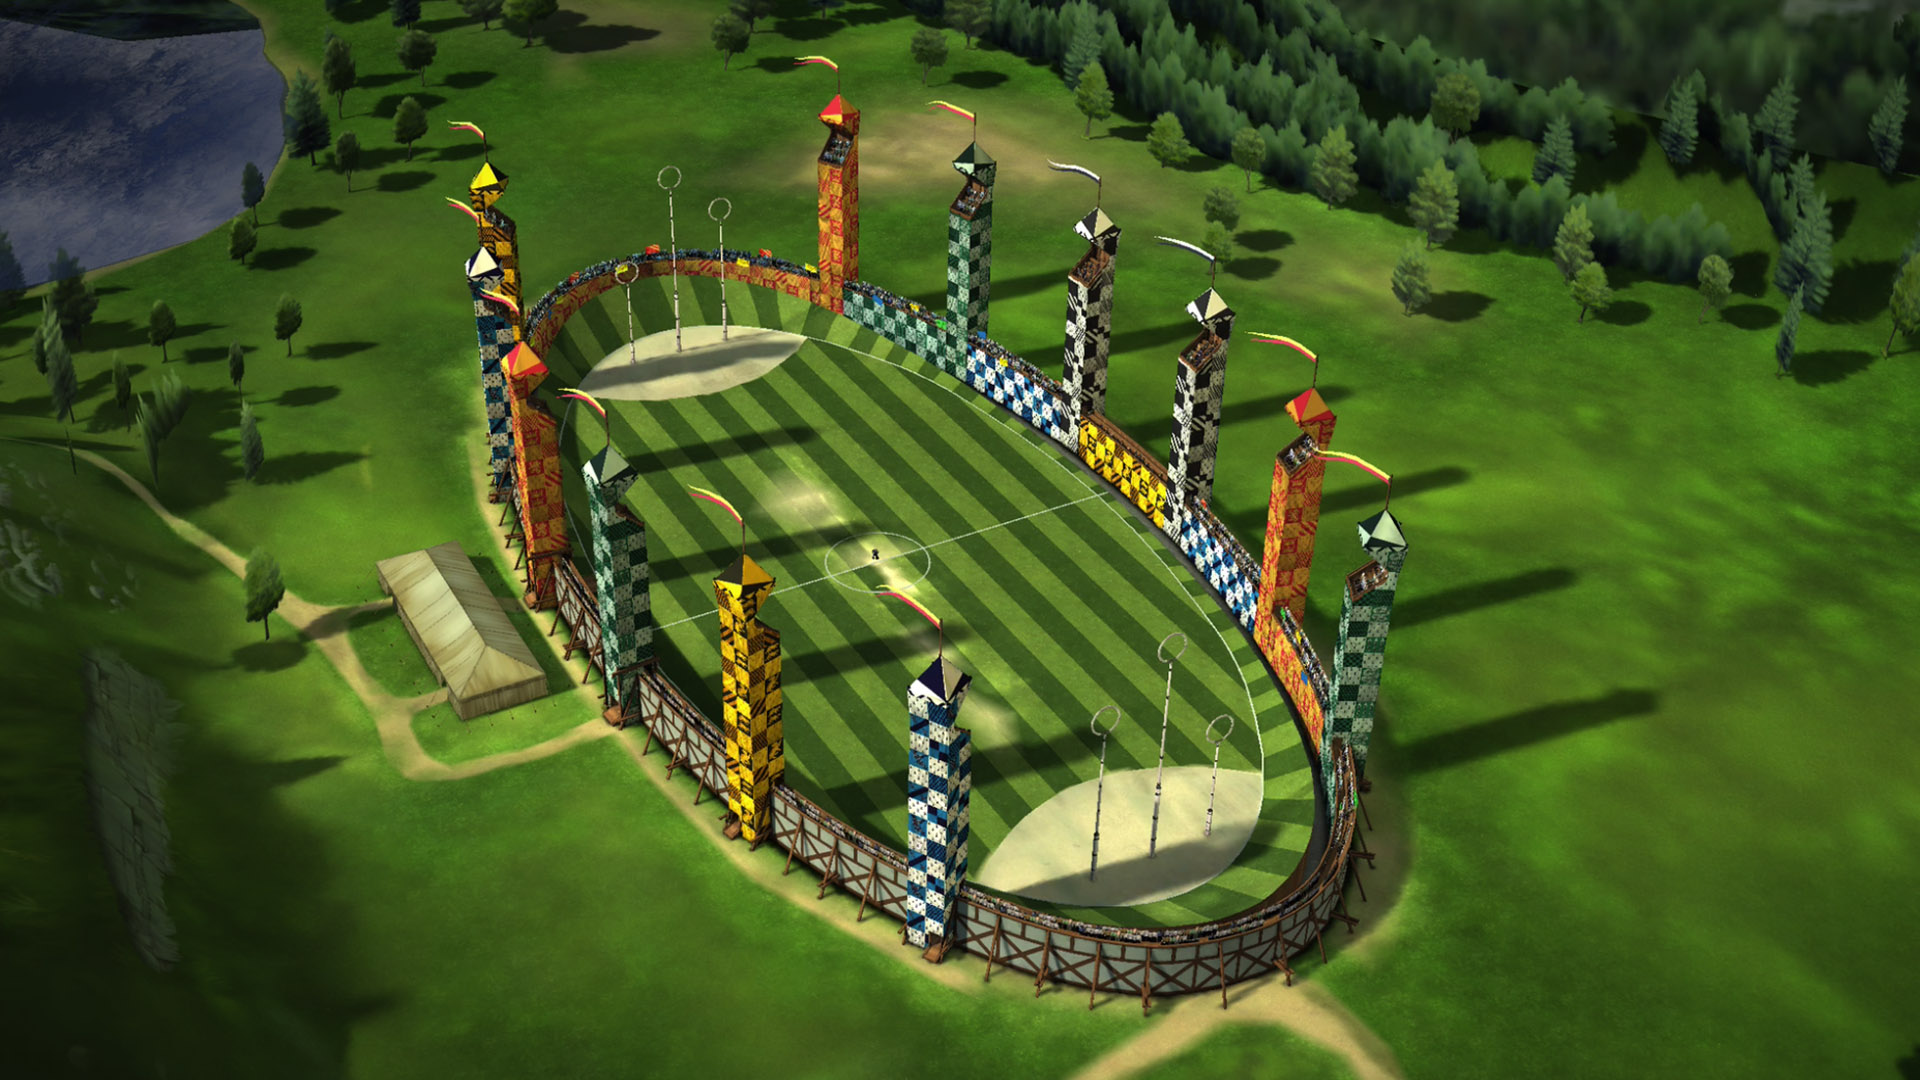 """The Quidditch Stadium is seen from above in this new game image from """"Harry Potter: Hogwarts Mystery""""."""